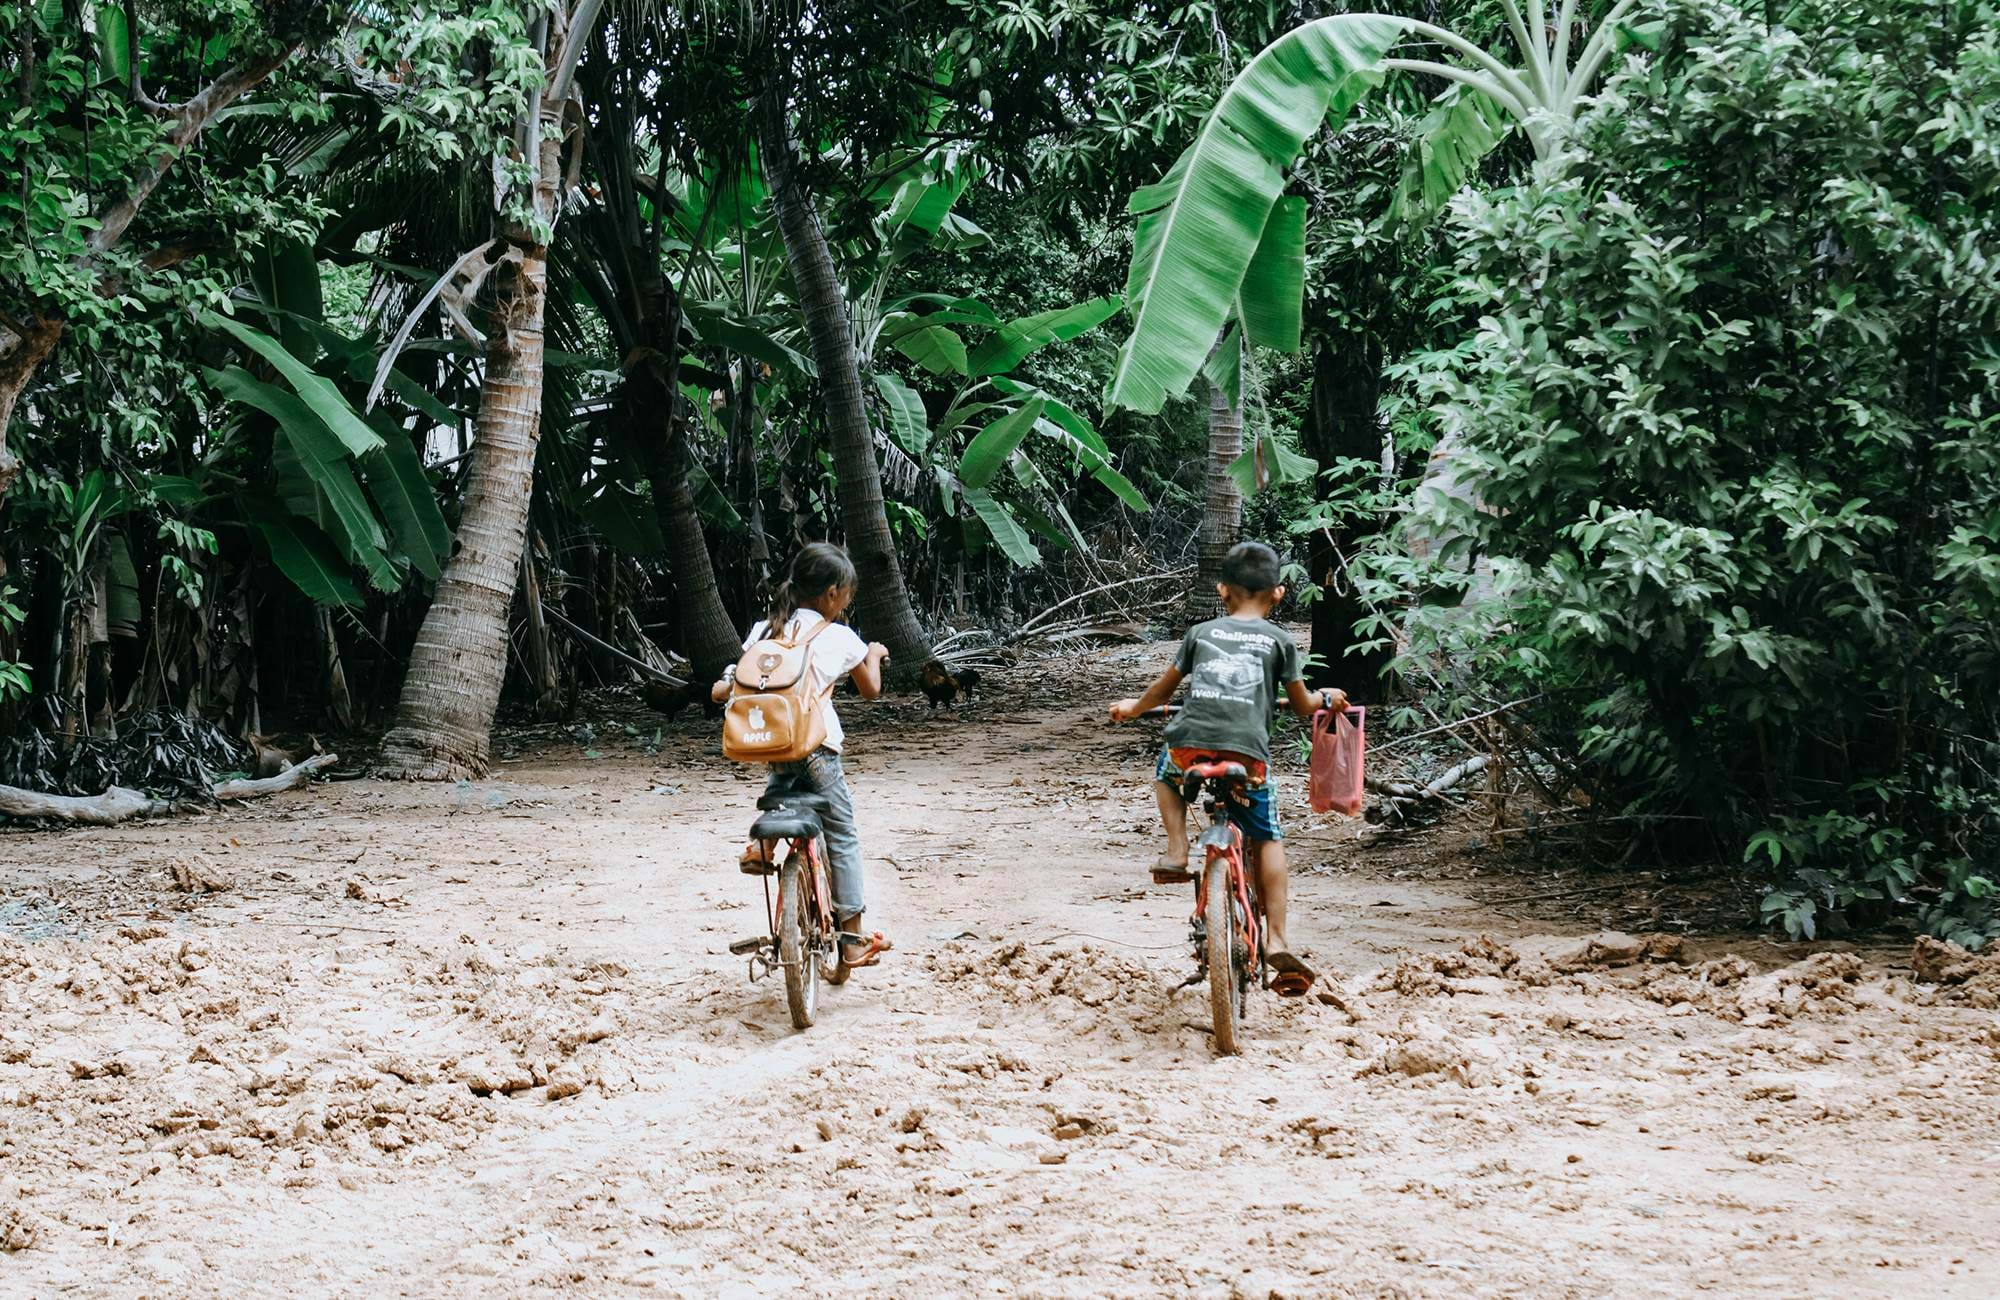 cambodia-krong-poi-pet-paoy-paet-children-on-bikes-cover